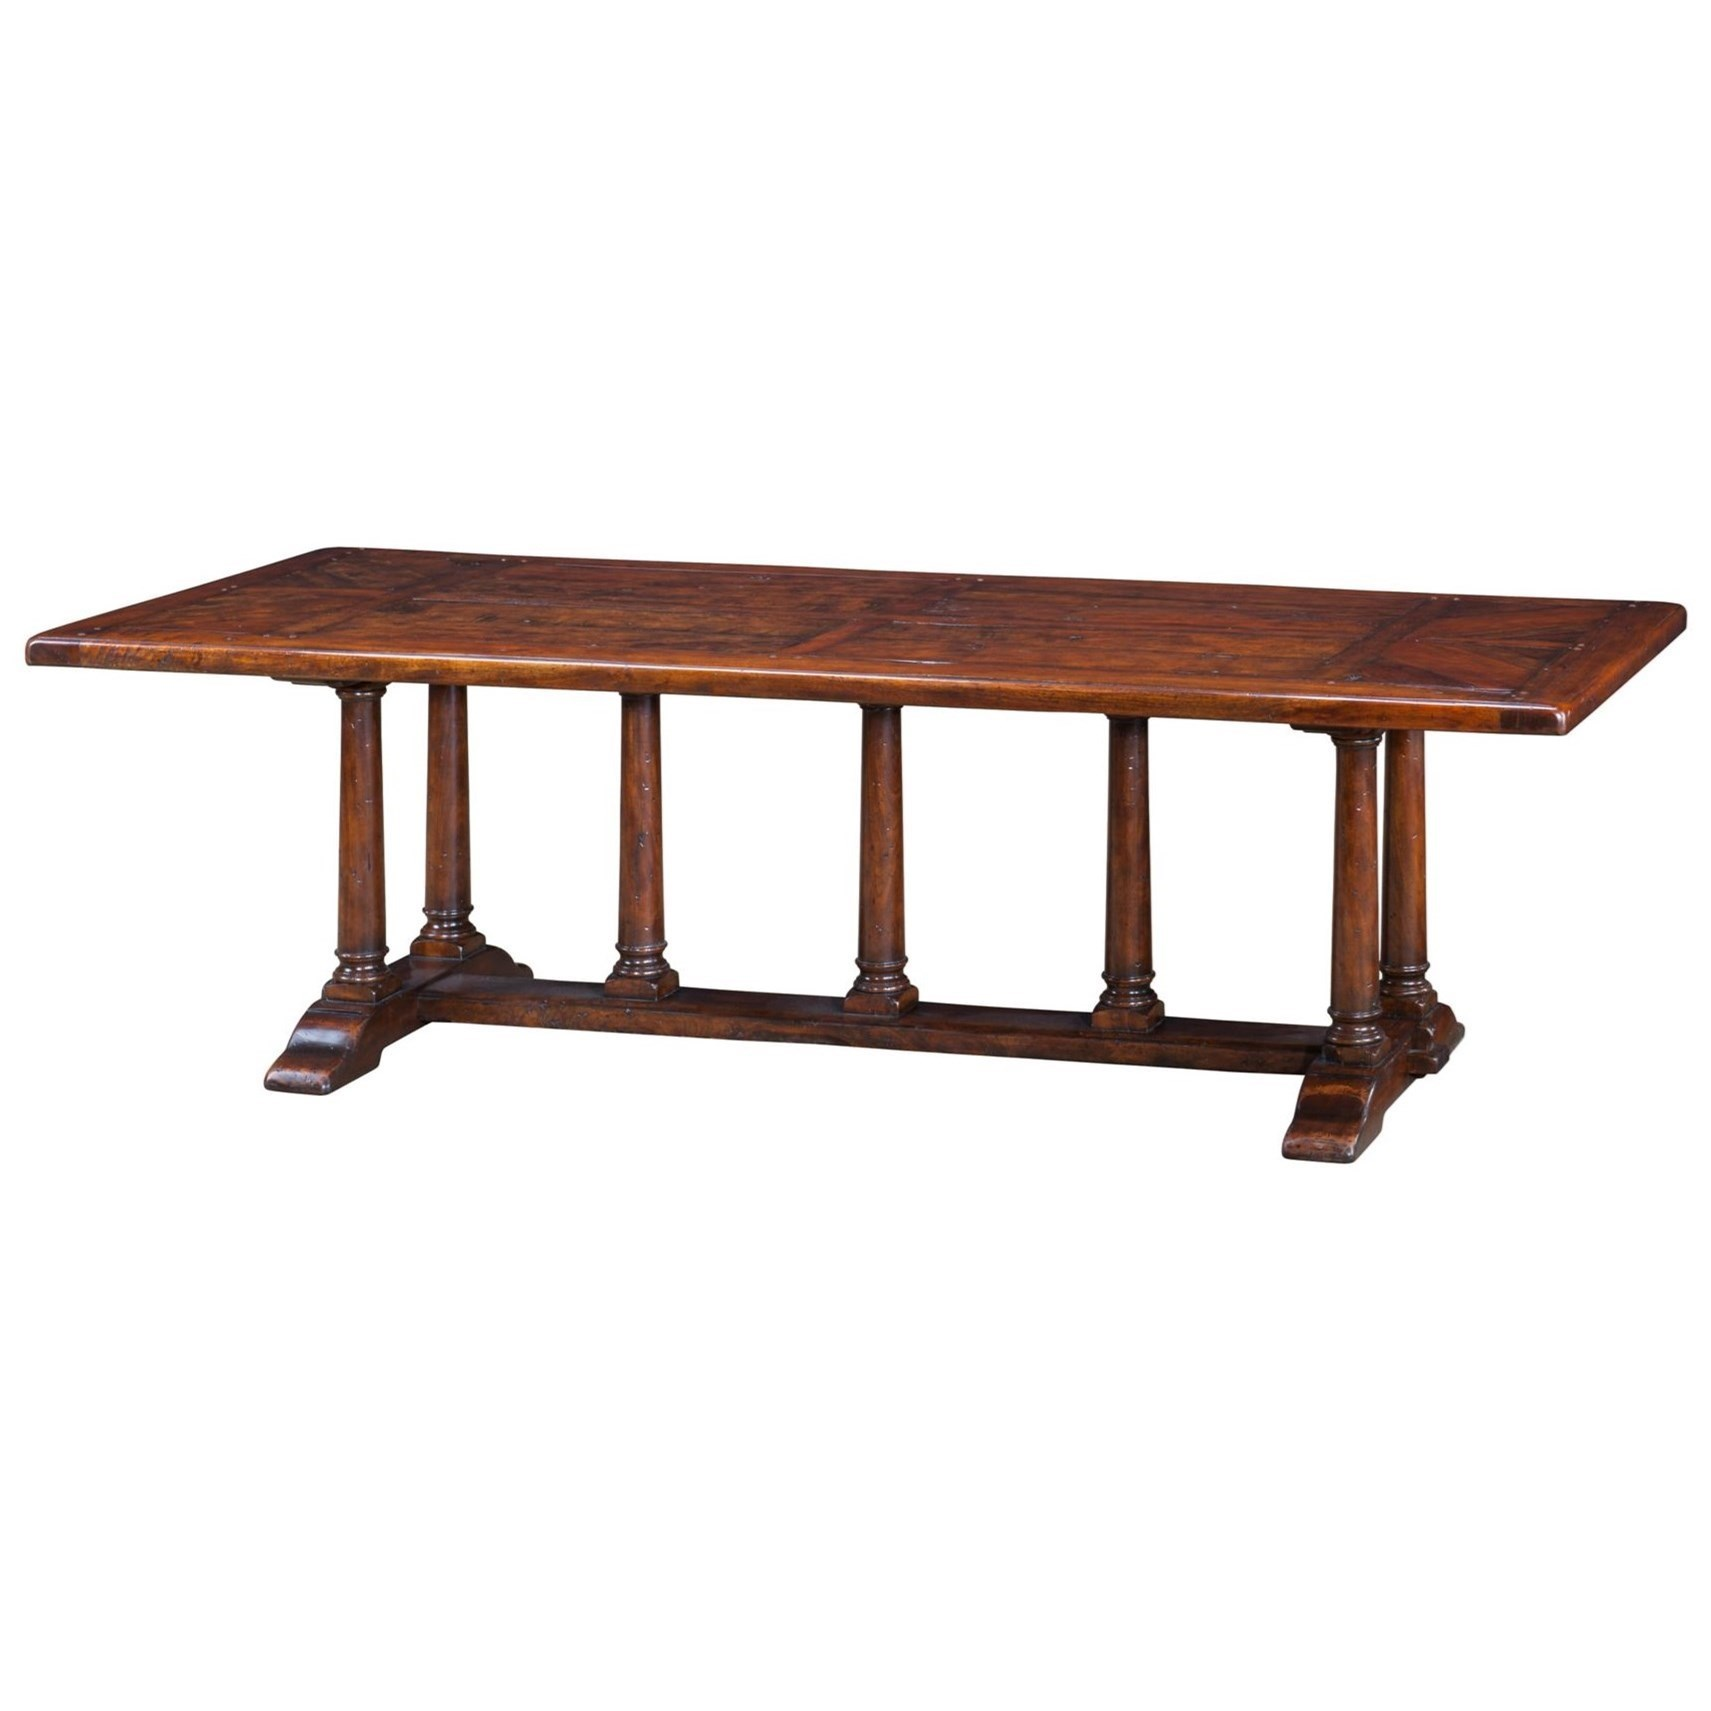 theodore alexander castle bromwich a mellow classic dining table baeru0027s furniture dining tables